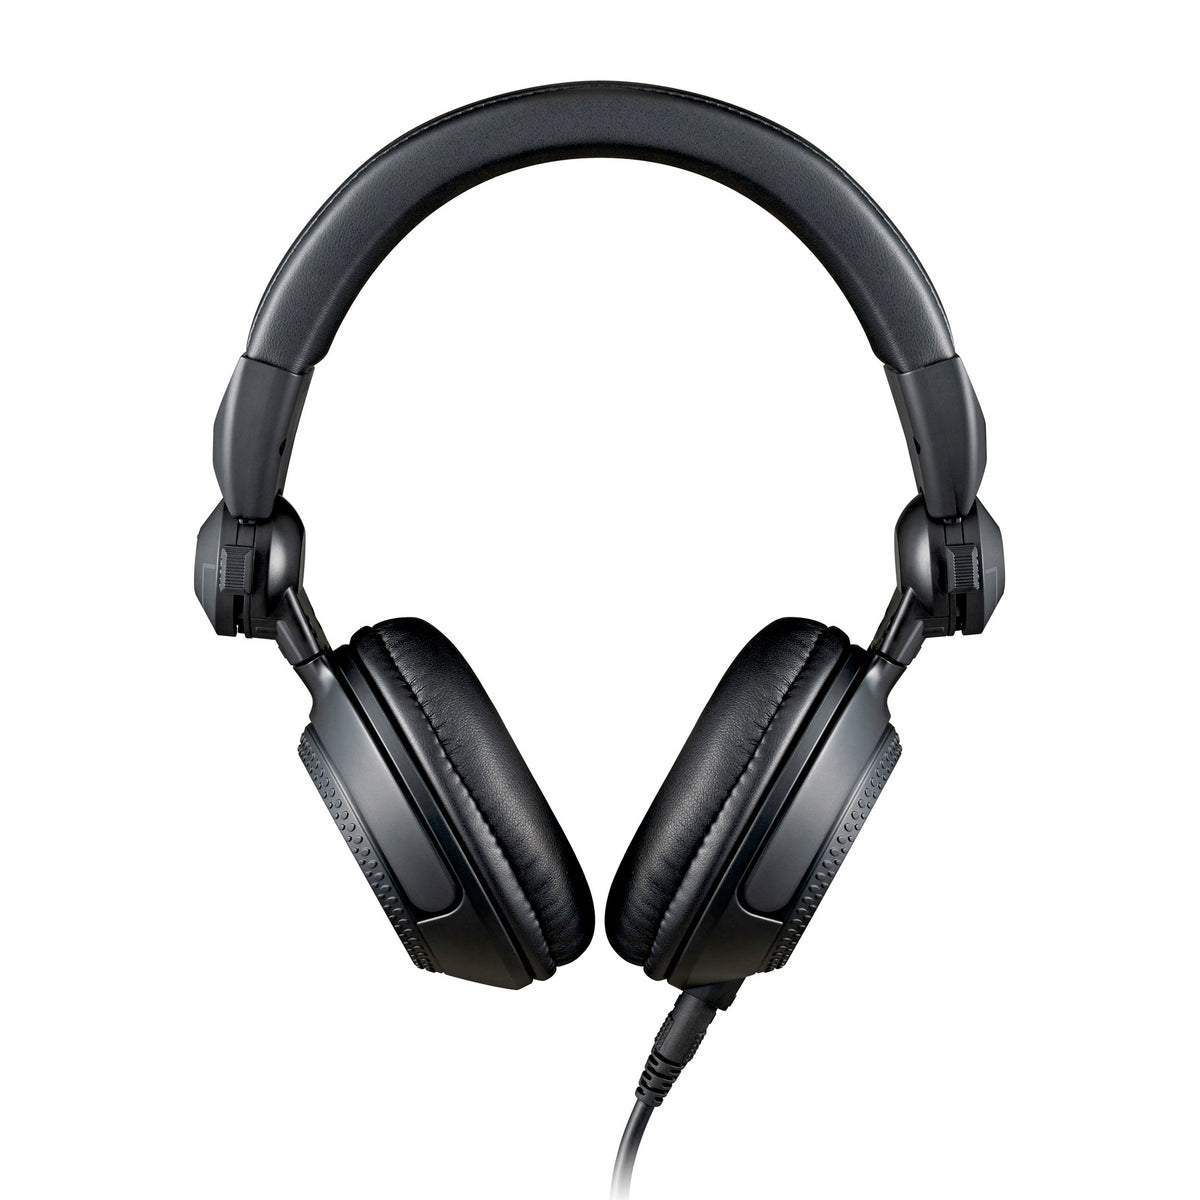 Technics: EAH-DJ1200 DJ Headphones - Black - PRE-ORDER